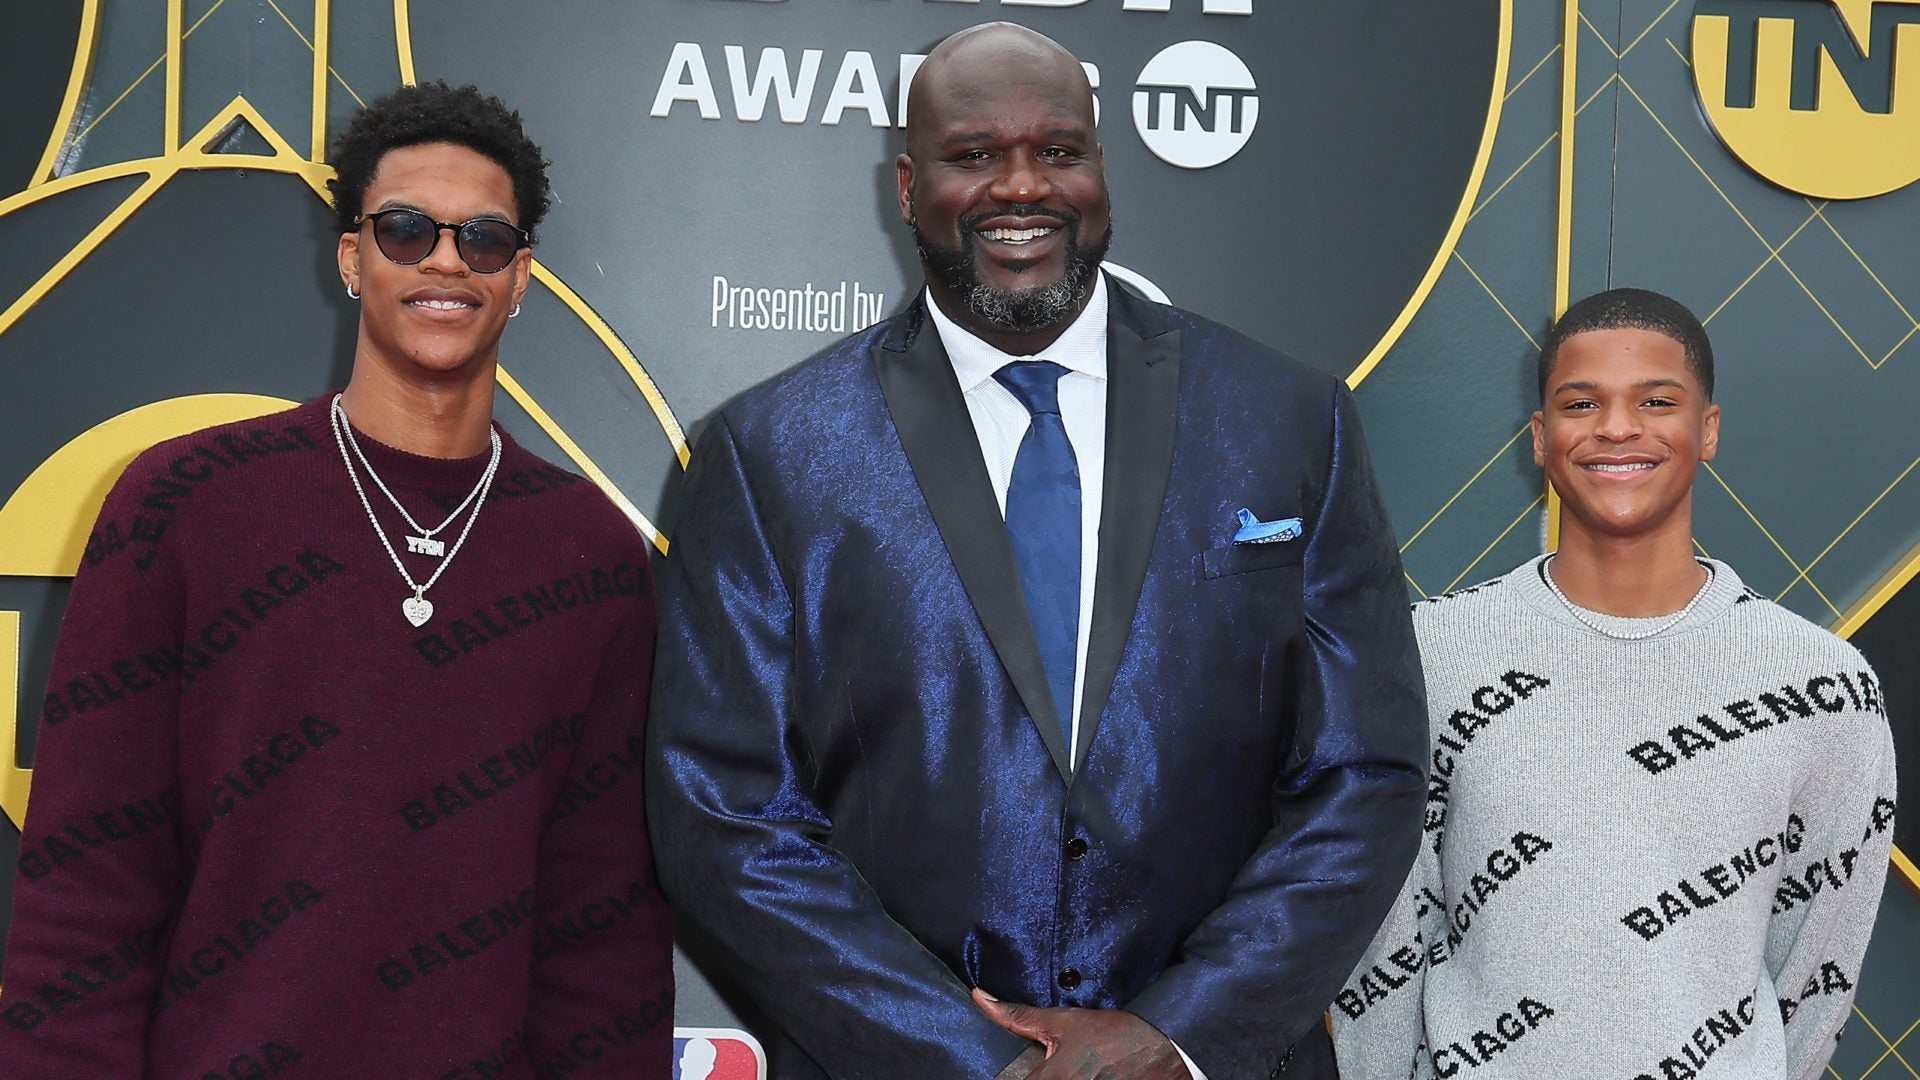 The Best Red-Carpet Looks At The 2019 NBA Awards